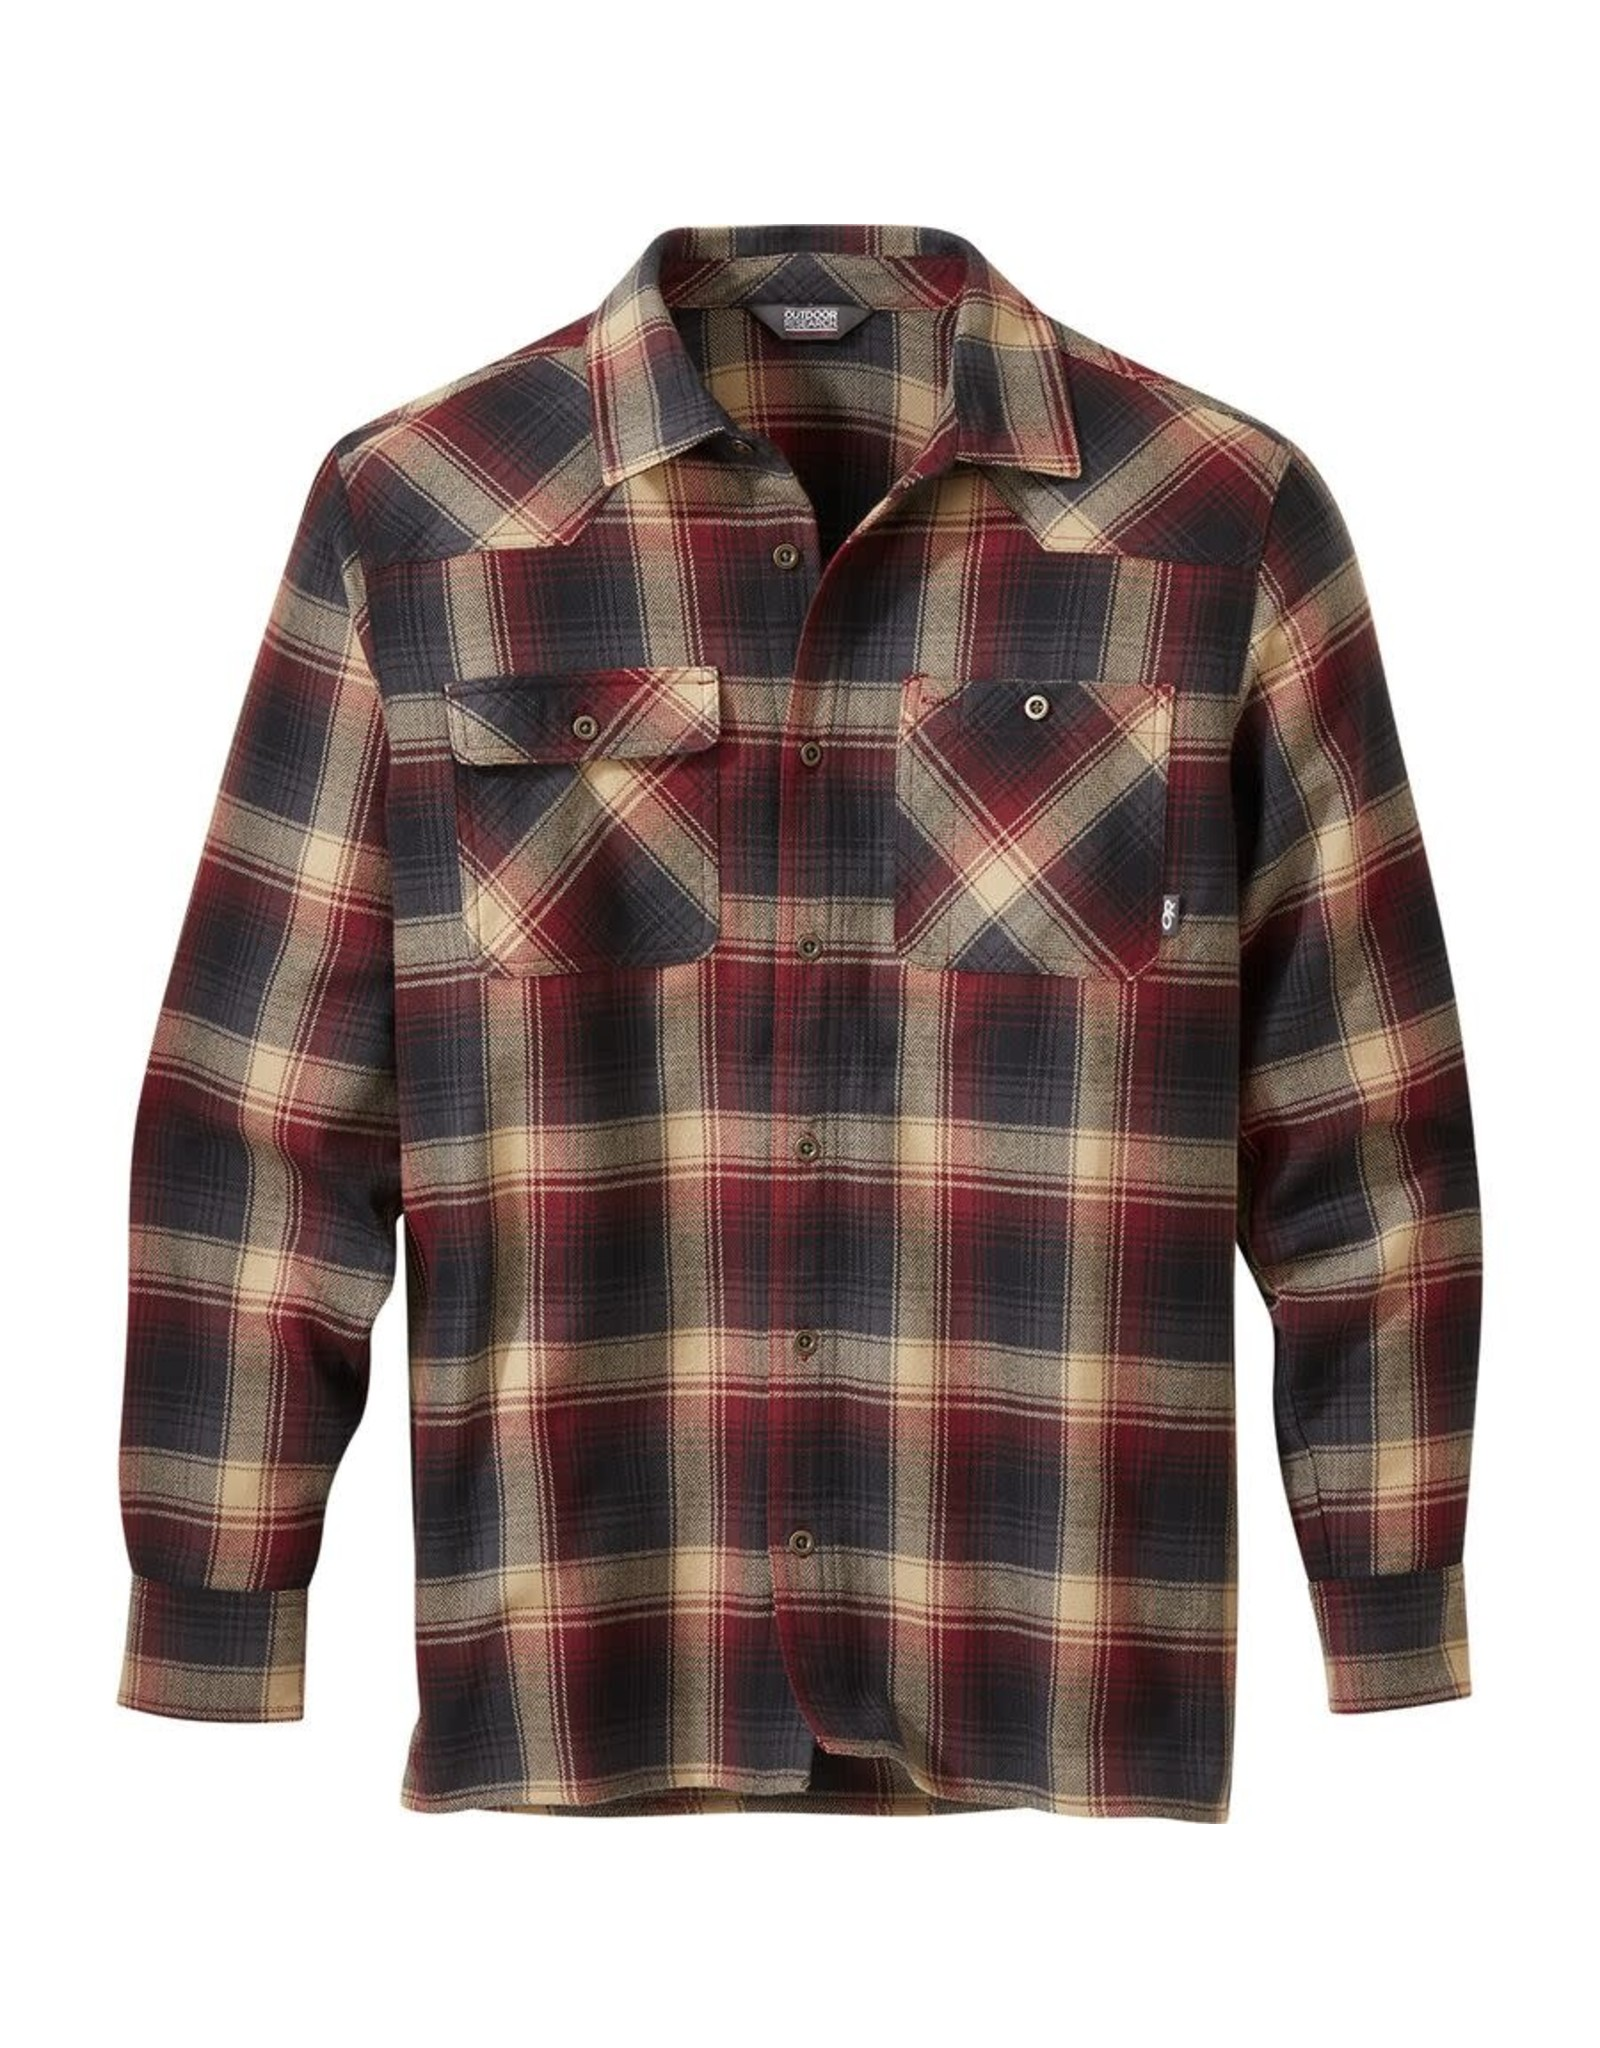 Outdoor Research Outdoor Research Feedback Flannel Shirt Madder Plaid L